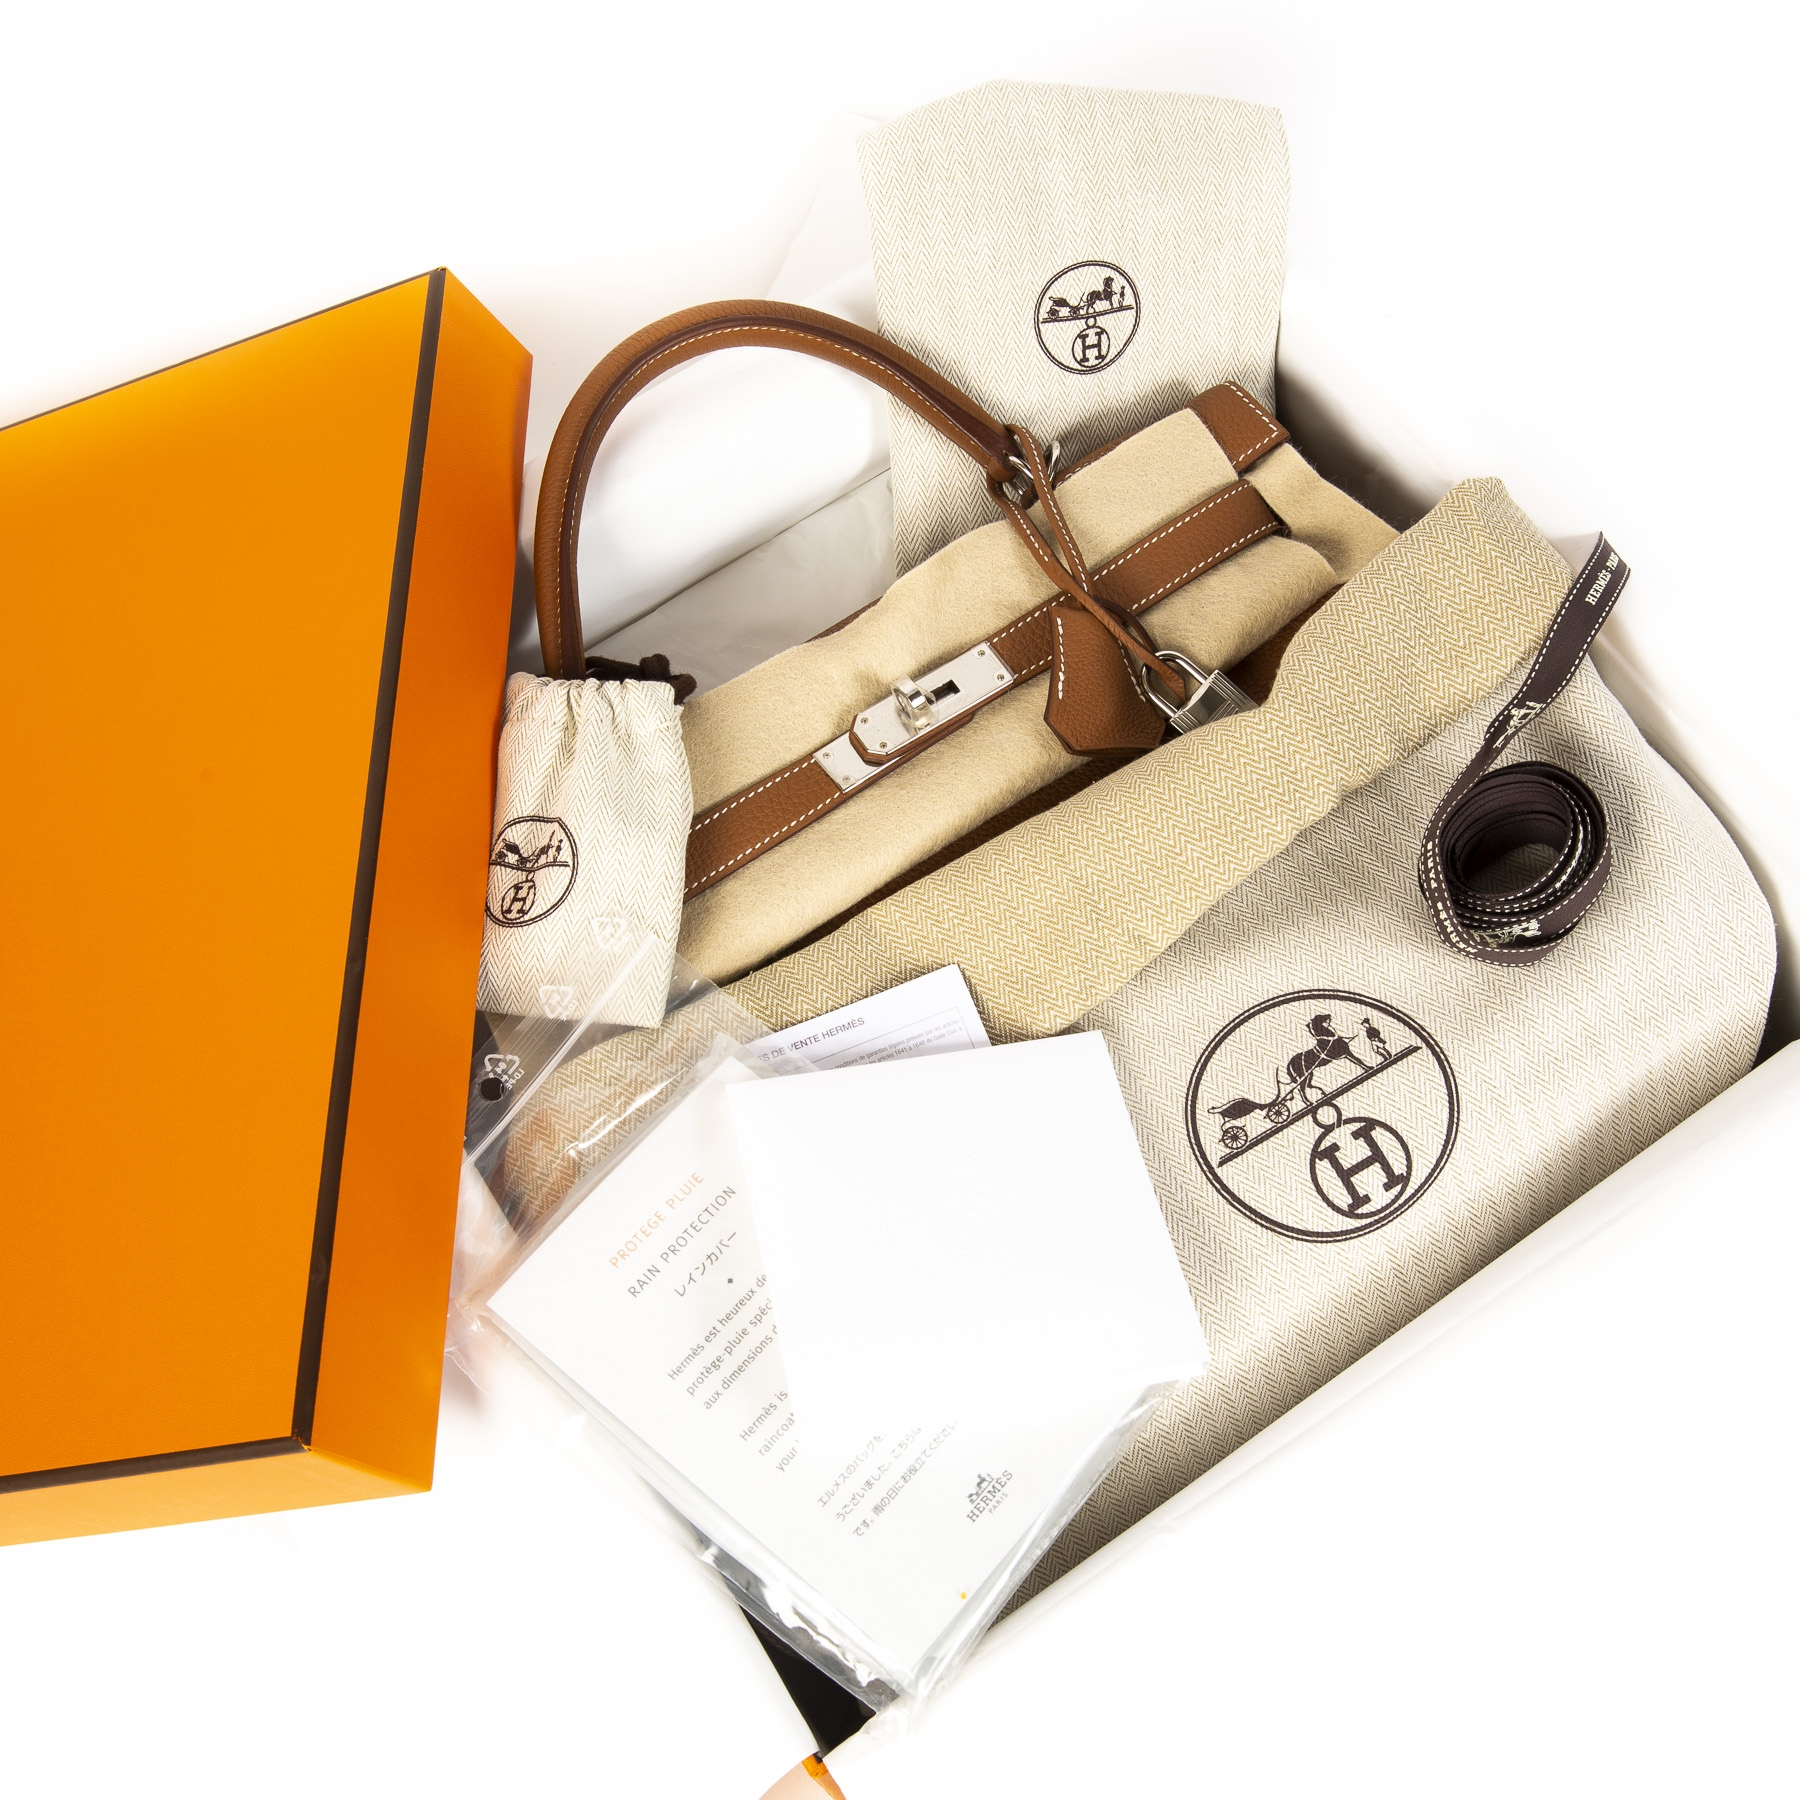 brand new and store fresh designer Hermes bag available online at Labellov